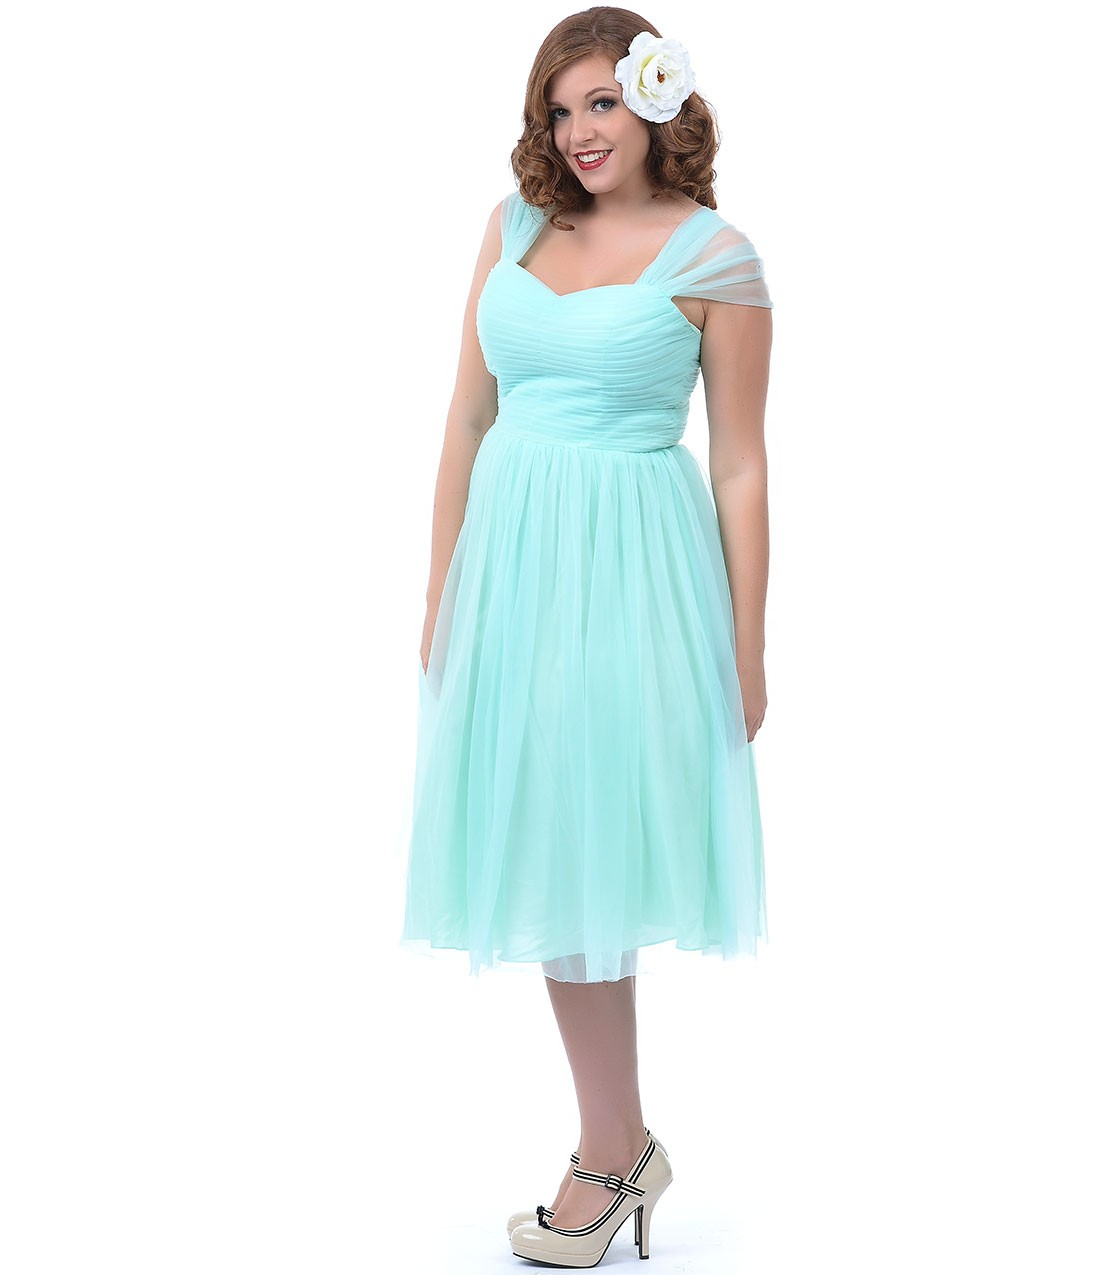 Brides Guide to Plus Size Bridesmaid Dresses